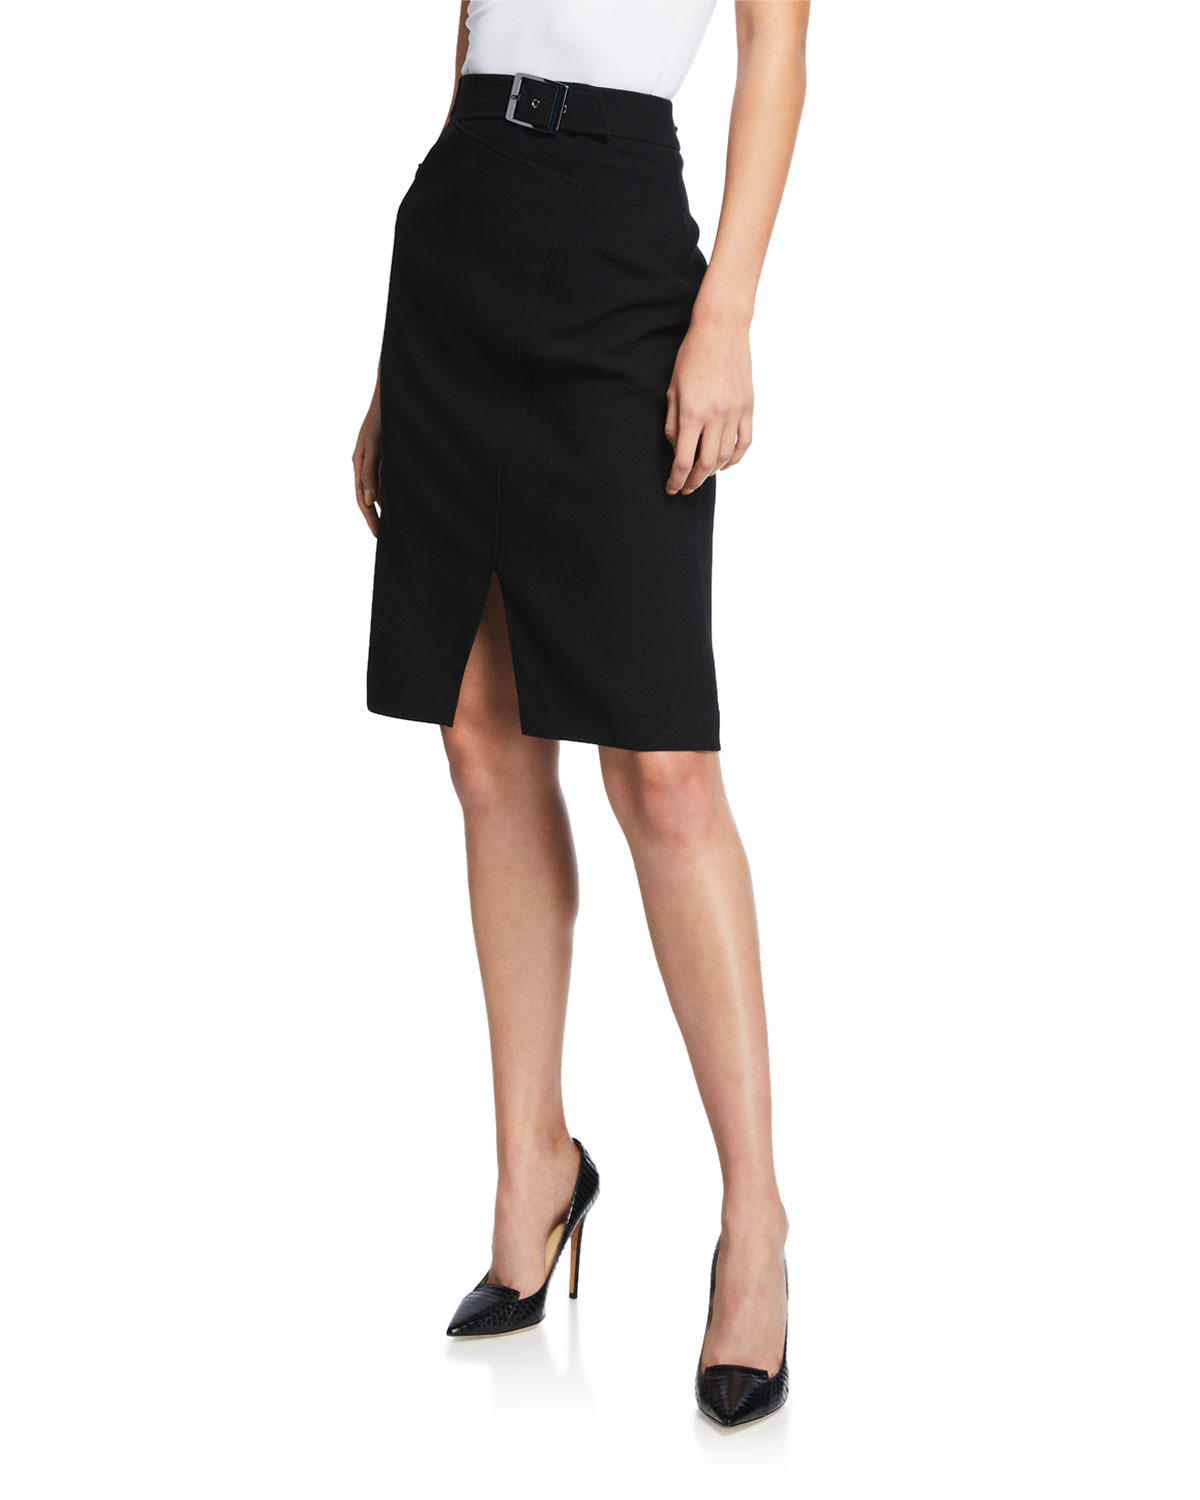 add4a224bf Elie Tahari Gracelyn Belted Crepe Pencil Skirt with Front Slit ...